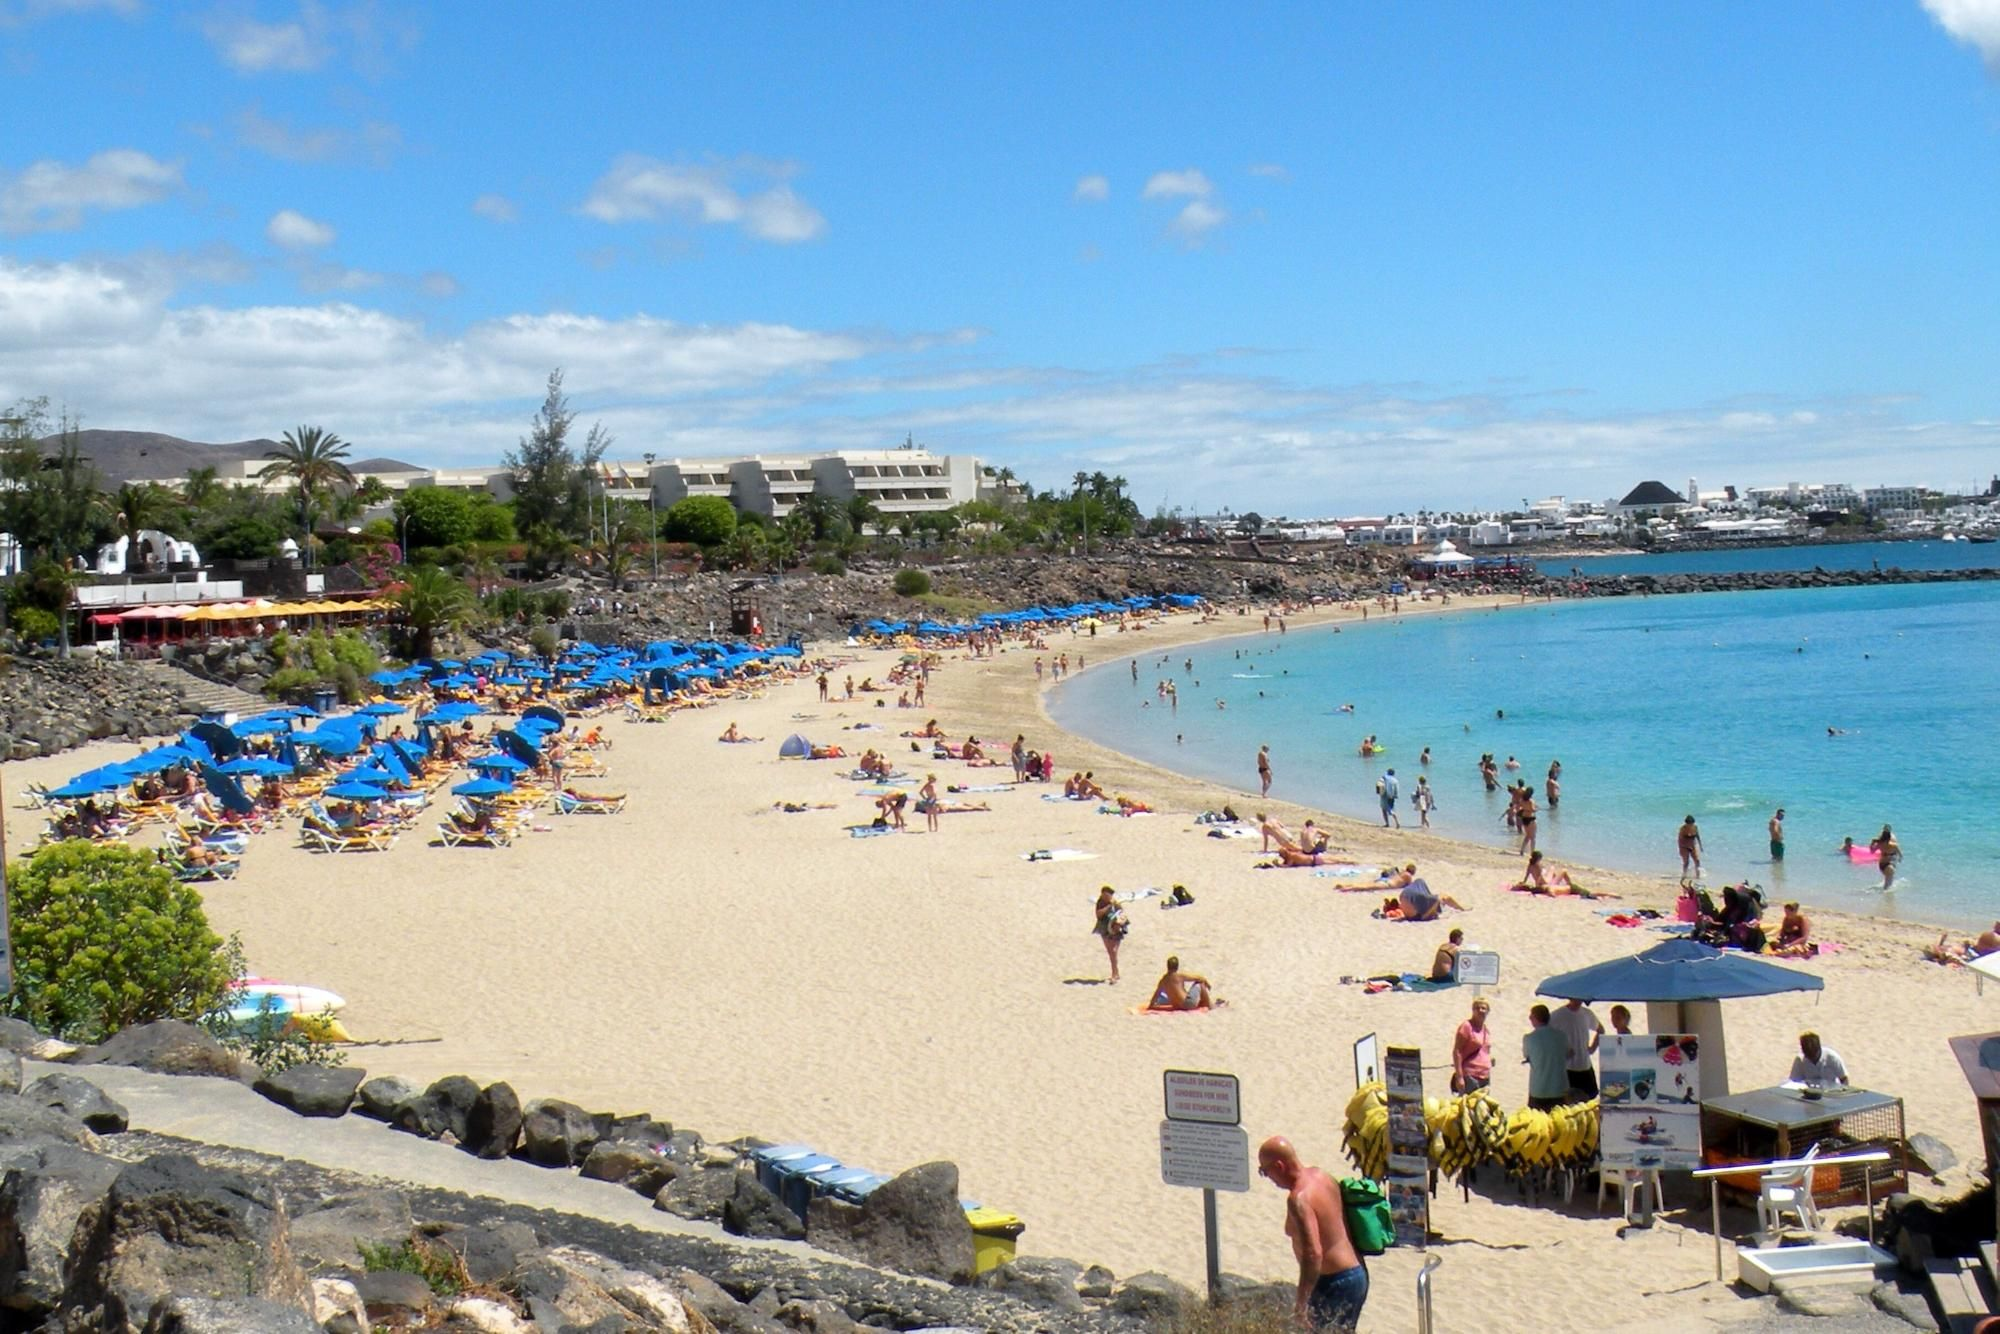 Playa Dorada Beach Blanca See 721 Reviews Articles And 210 Photos Of Ranked No 4 On Tripadvisor Among 40 Attractions In